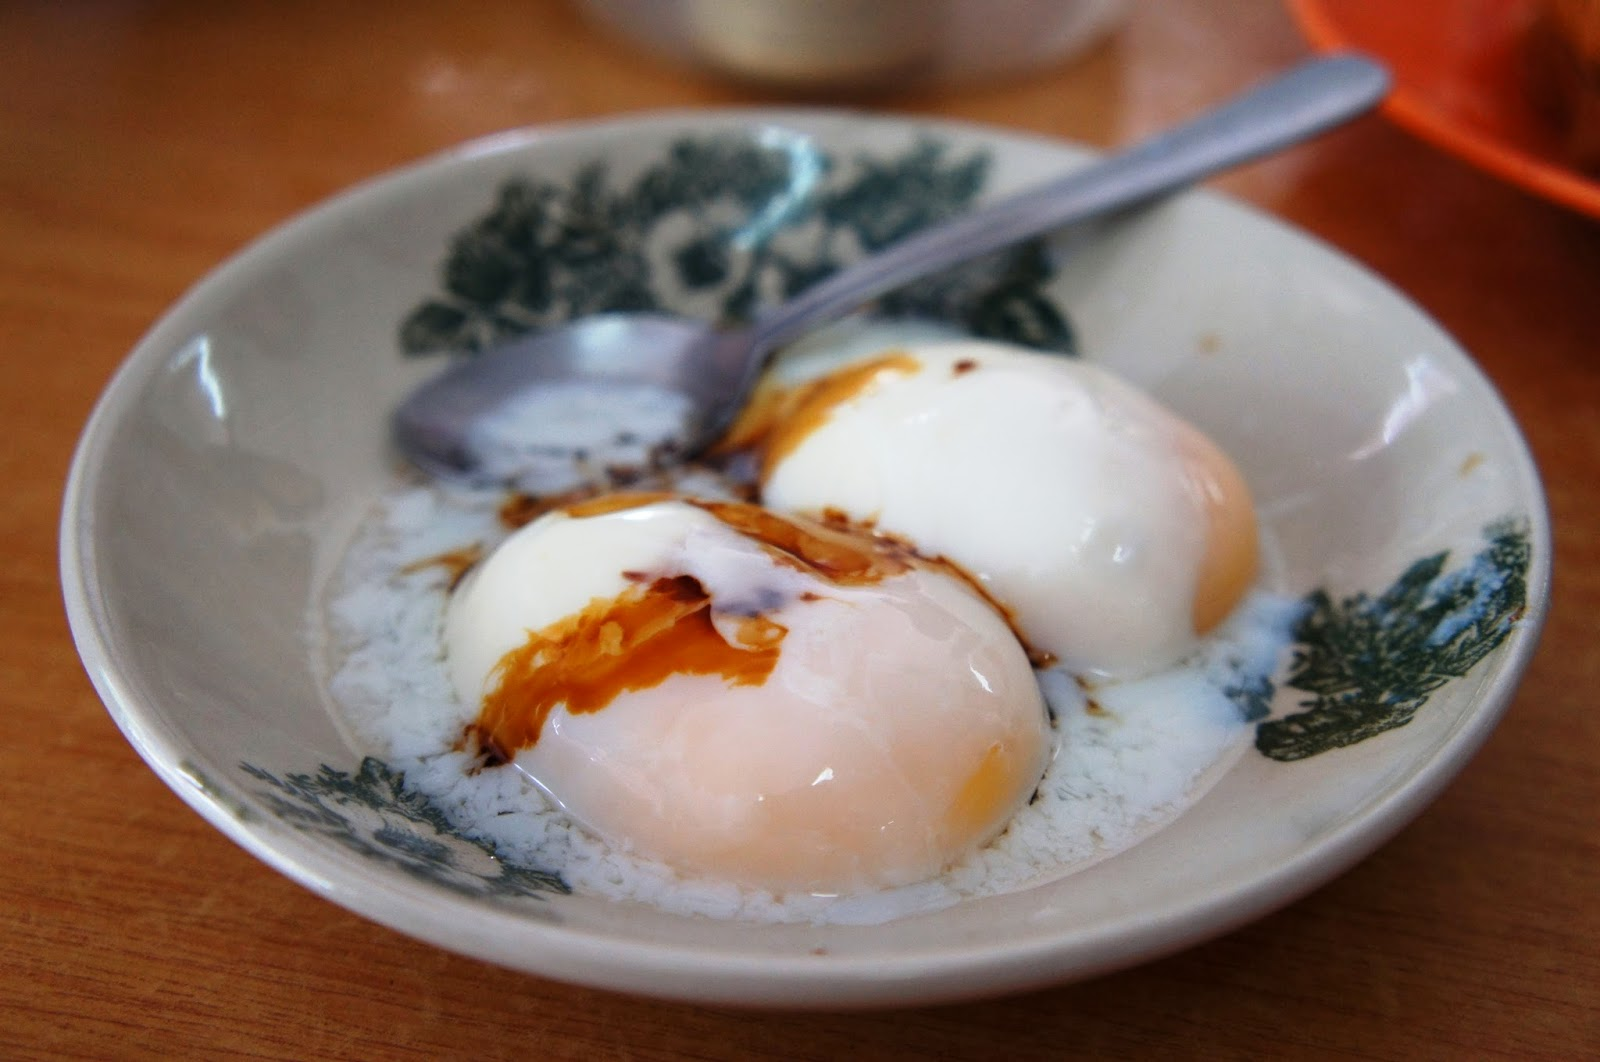 炸弹 (Zhà dàn) pronounced 'Zar tan'  in Hokkien dialect = Half Boiled Eggs